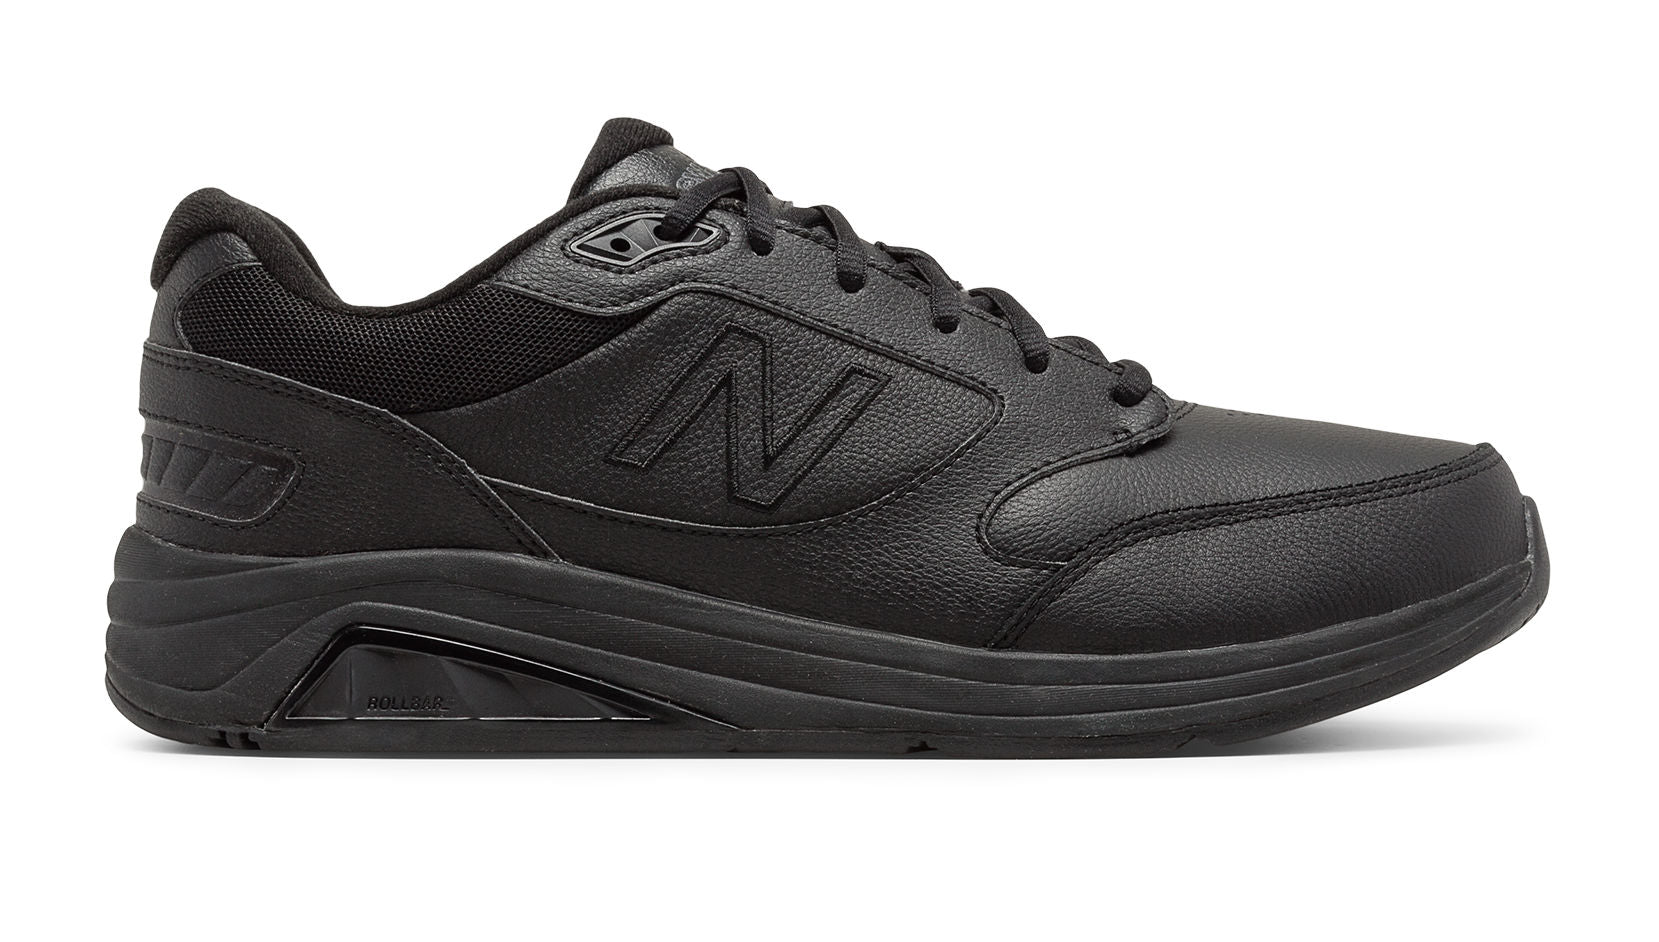 Men's New Balance 928 v.3 - men's walking shoes - Sports 4